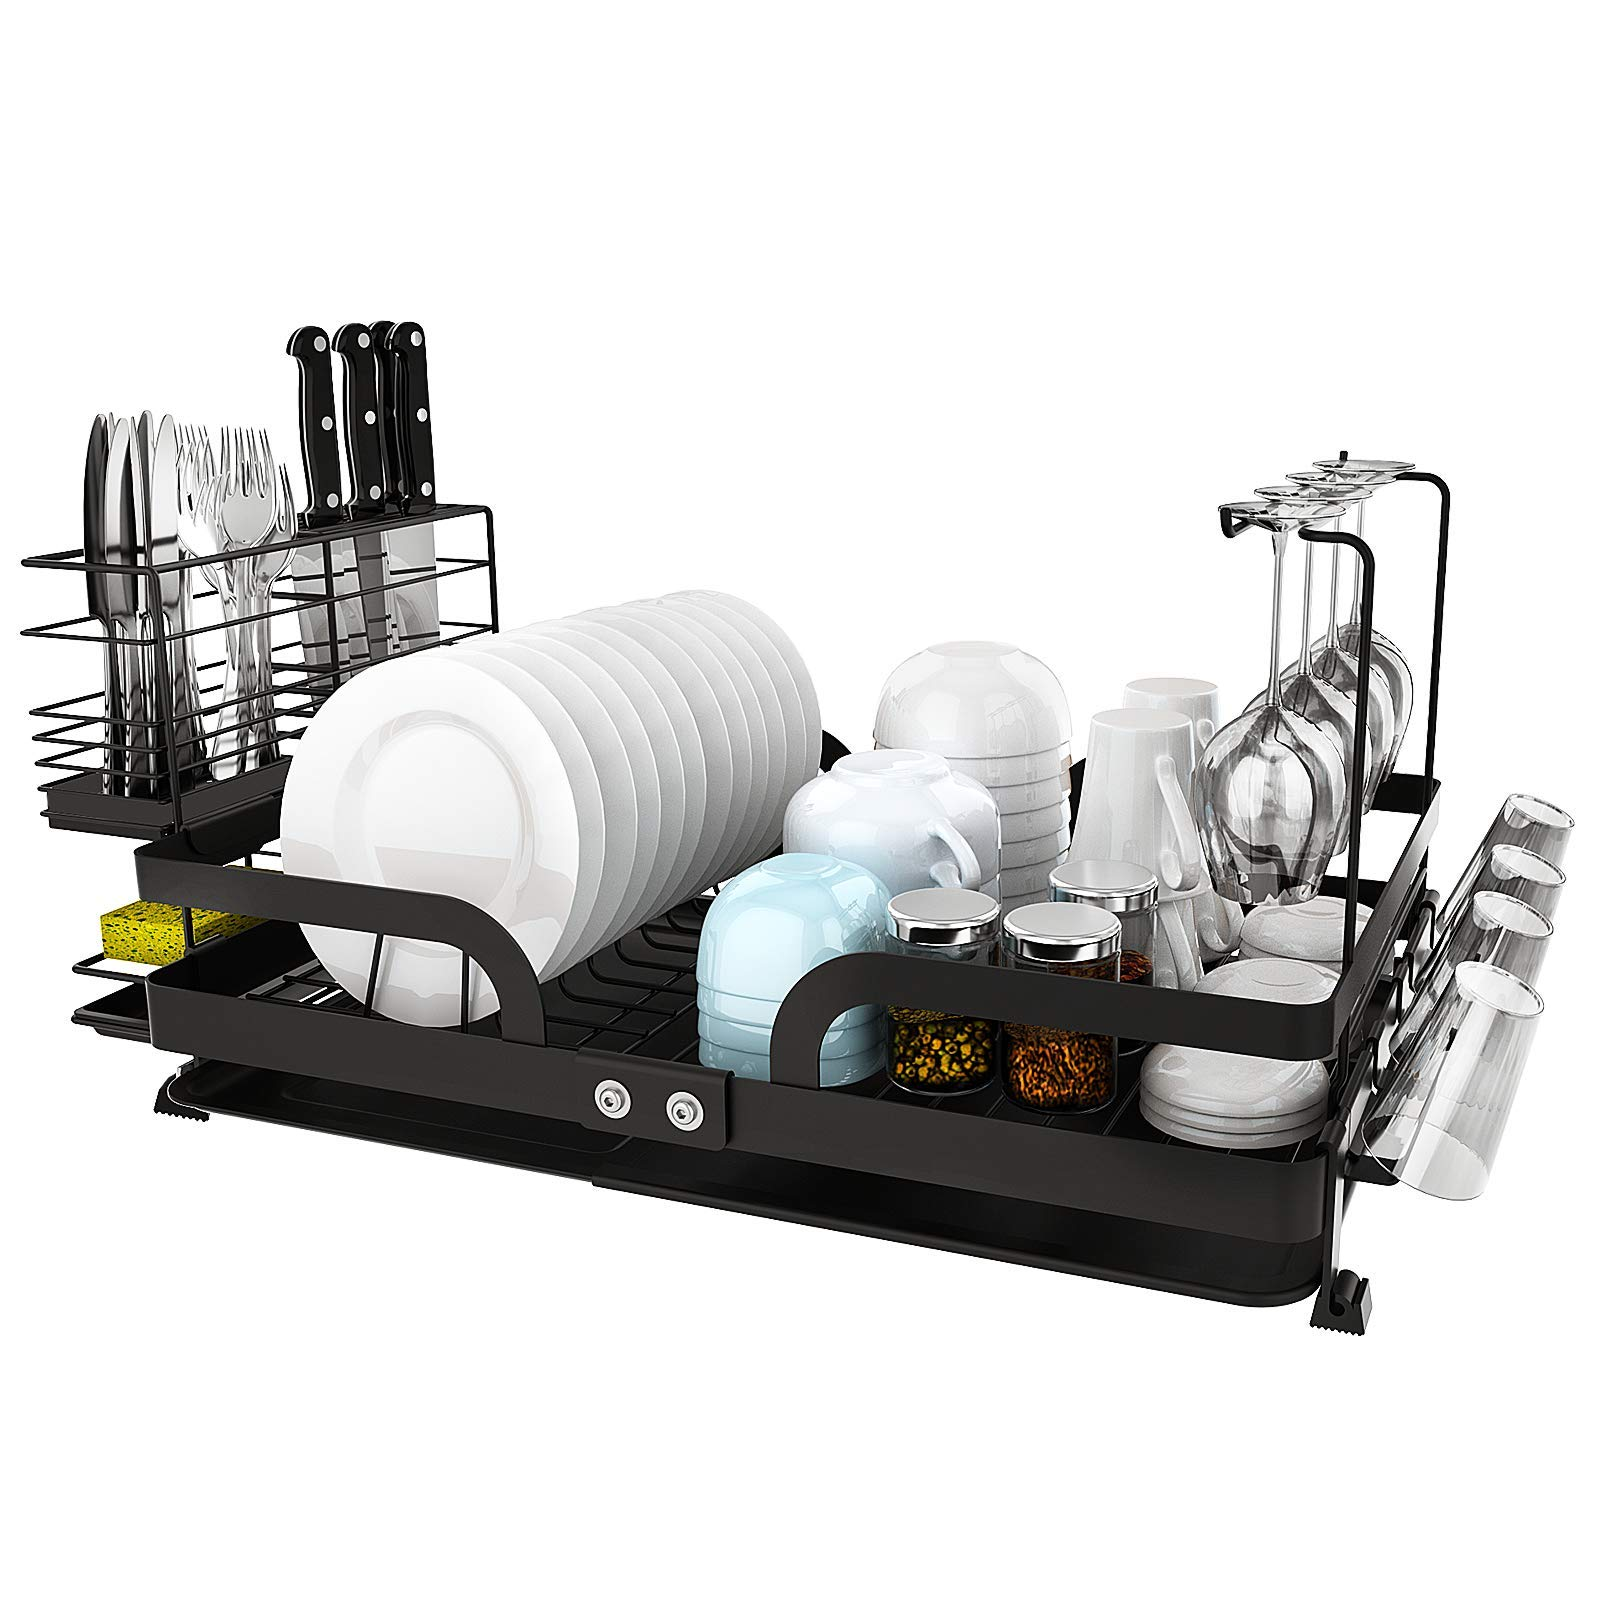 jzbrain dish drying rack foldable large dish rack with removable drainboard stainless steel dish drainer utensil holder cup holder attachments for